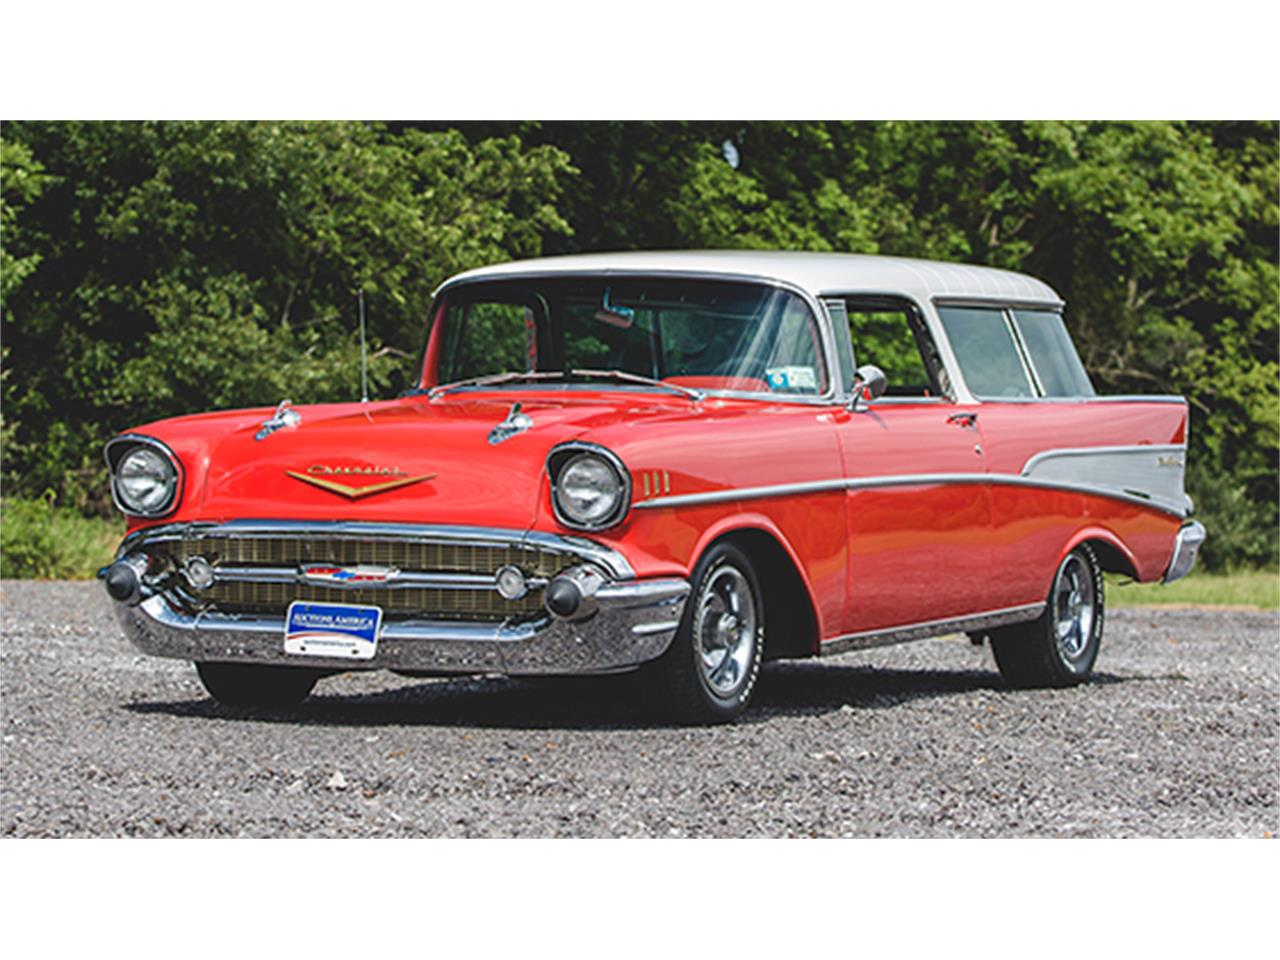 1957 Chevrolet Bel Air Nomad Station Wagon For Sale Classiccars Chevy Large Picture Of Located In Auburn Indiana Ja8c